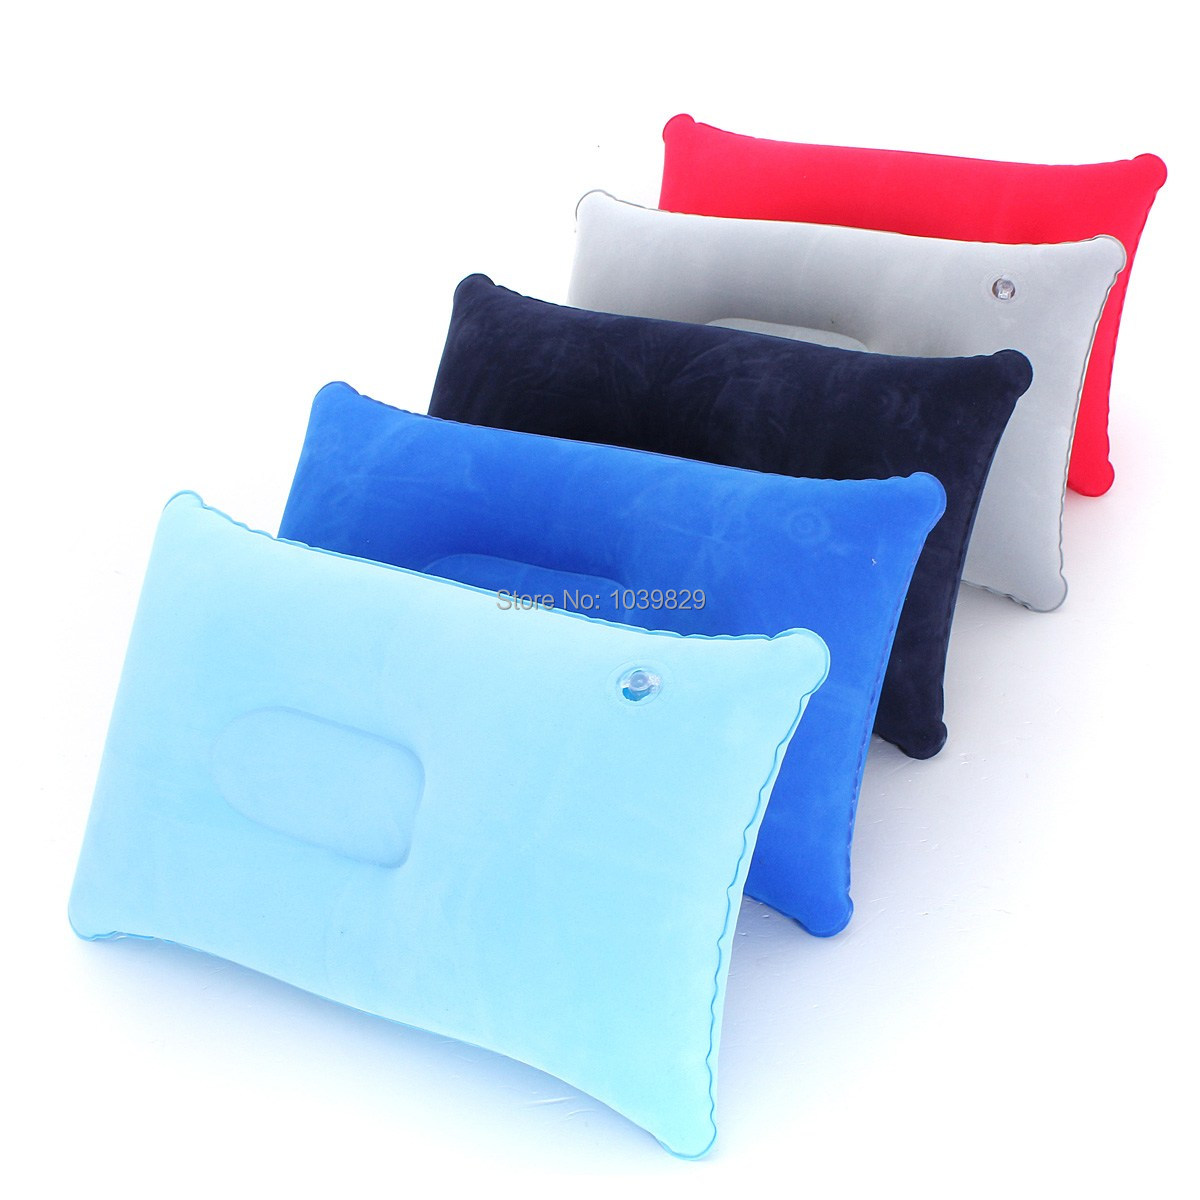 Wholesale Outdoor Camping Portable Folding Air Inflatable Pillow Double Sided Flocking Cushion For Travel Plane Hotel Pillows(China (Mainland))